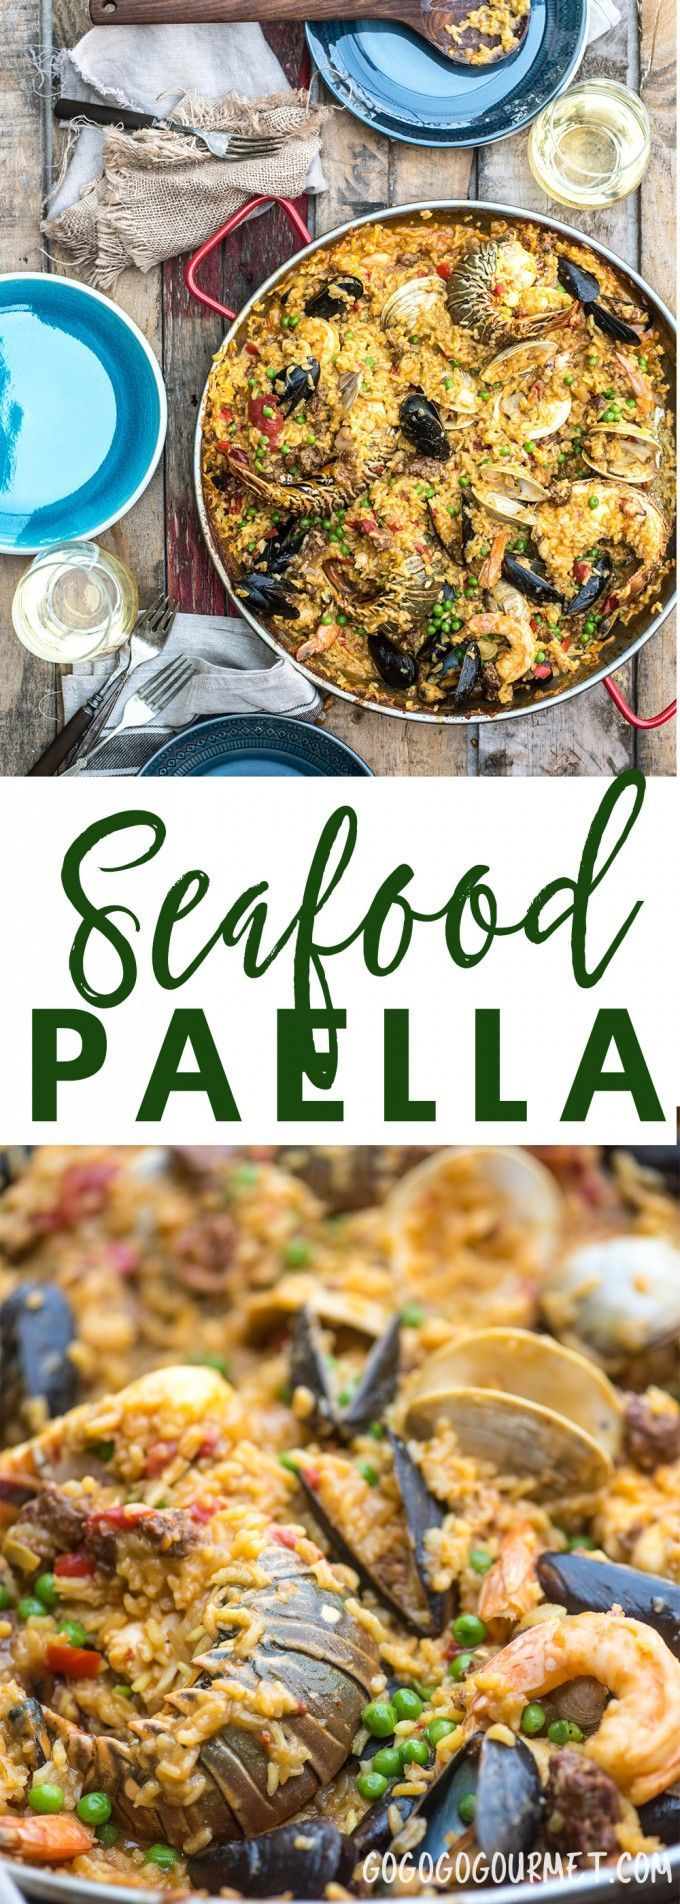 Seafood paella is a flavorful dinner ready to share with friends, chock full of seafood and chorizo. via @gogogogourmet